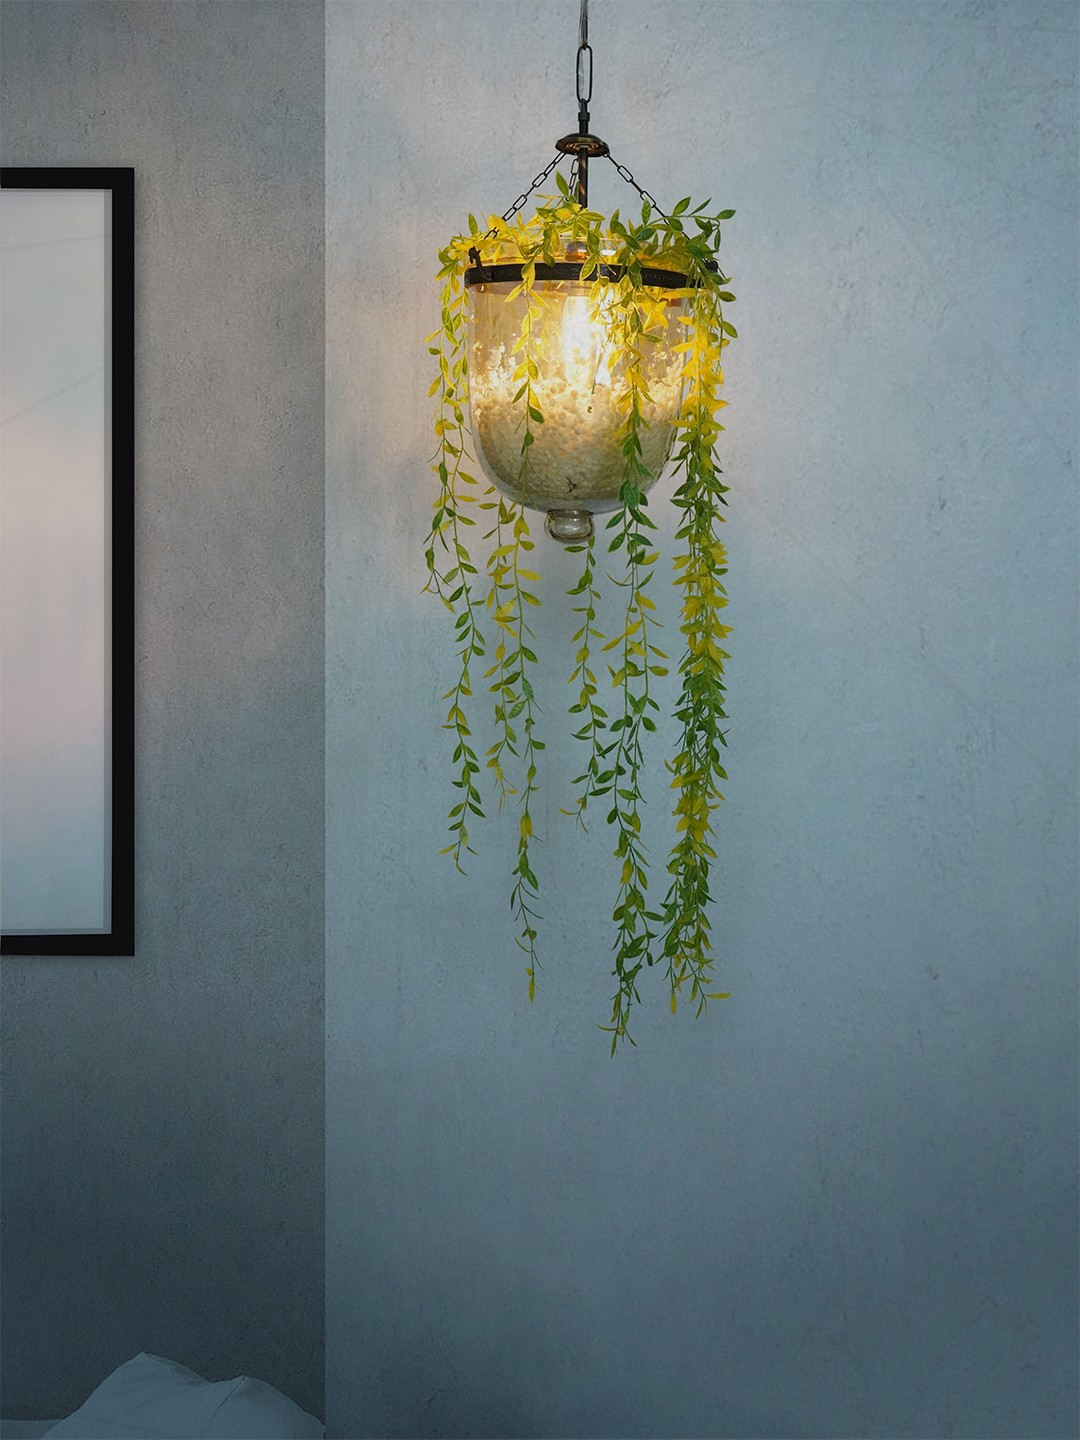 Planter Glass Jar Hanging Pendant Light